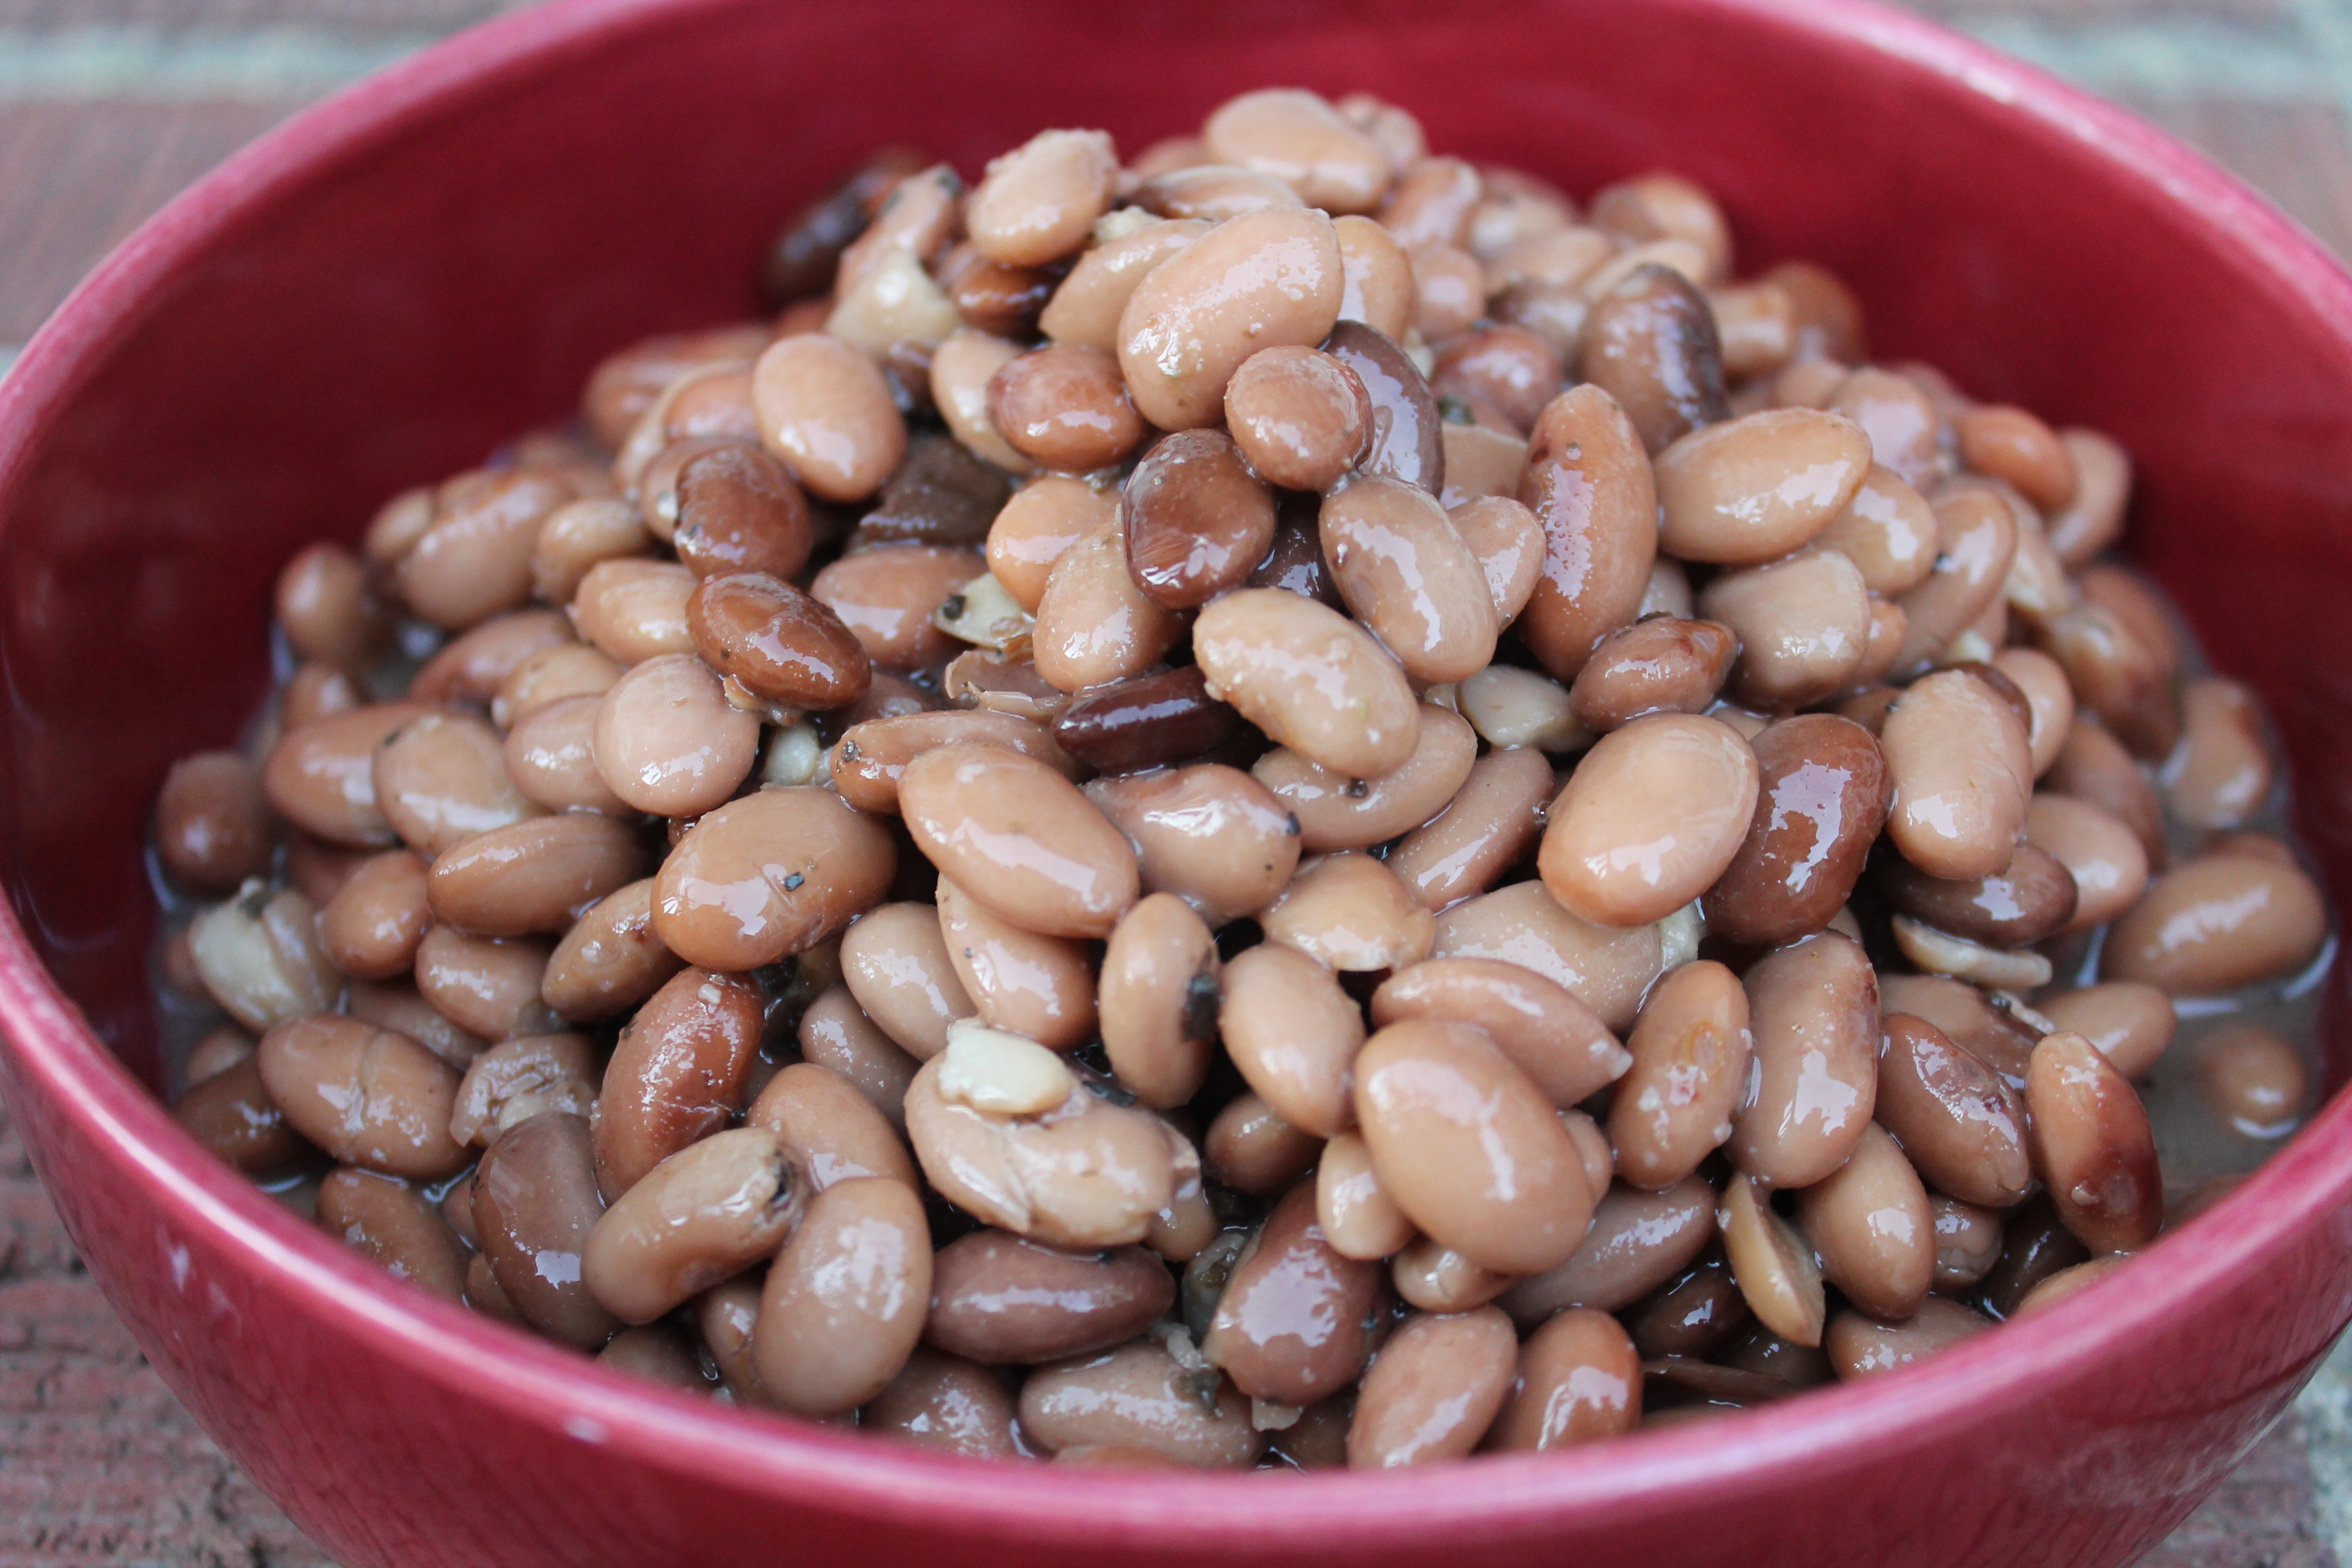 pinto beans Hands-on prep time is really only 15-20 minutes, since the soaking and cooking take place while you do other things the brilliant thing is this recipe yields about 5 cups cooked pinto beans, which you can enjoy throughout the week for super easy, quick meals.